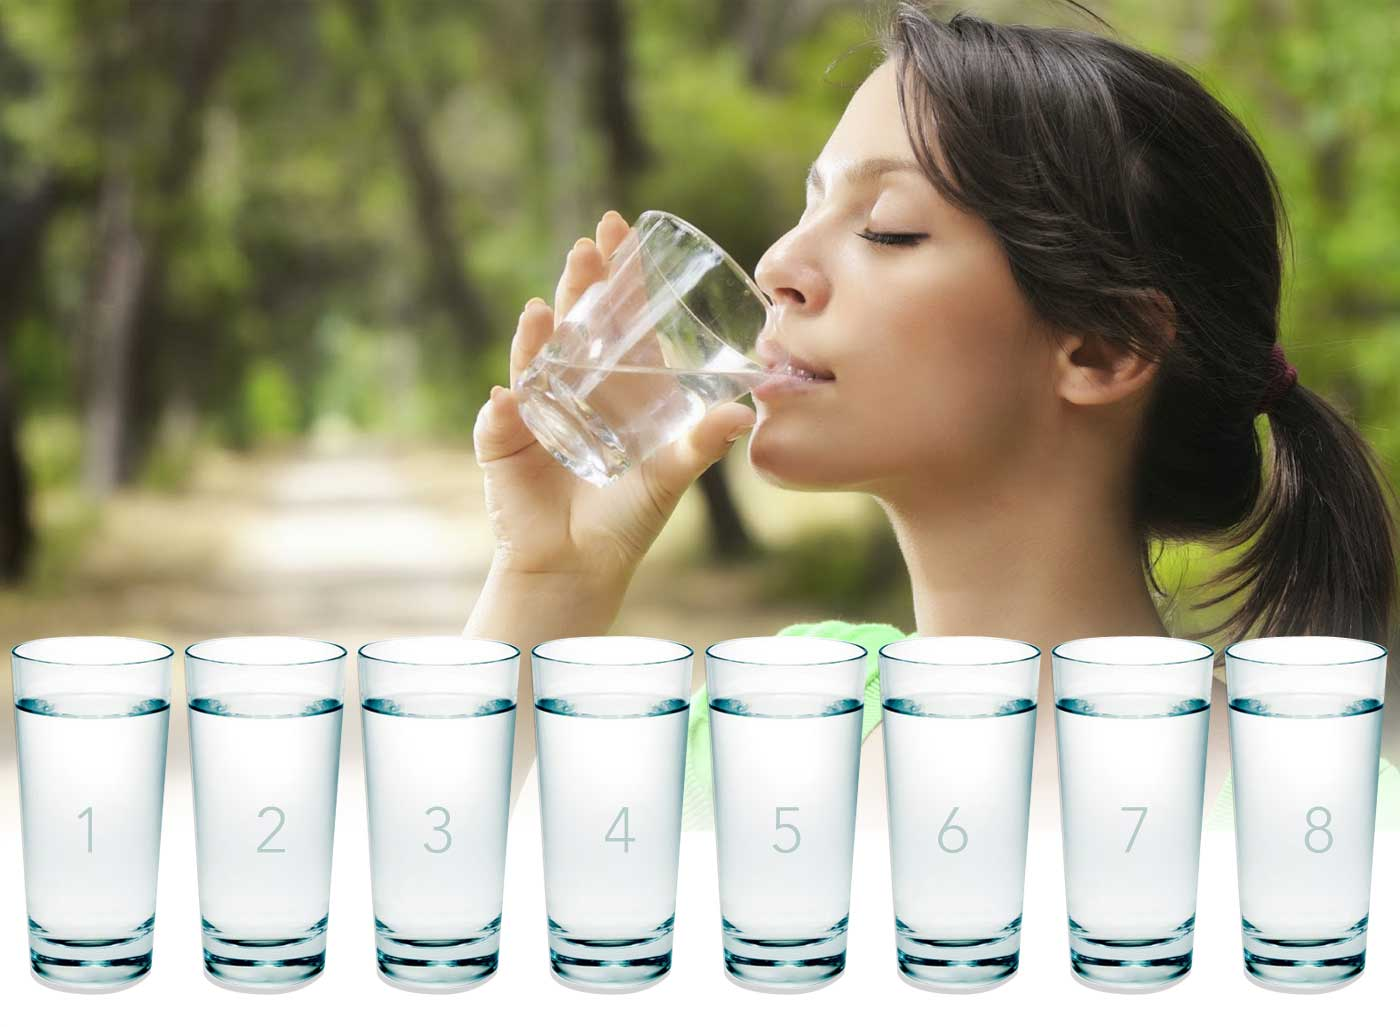 The Benefits of Maintaining Your Water Intake